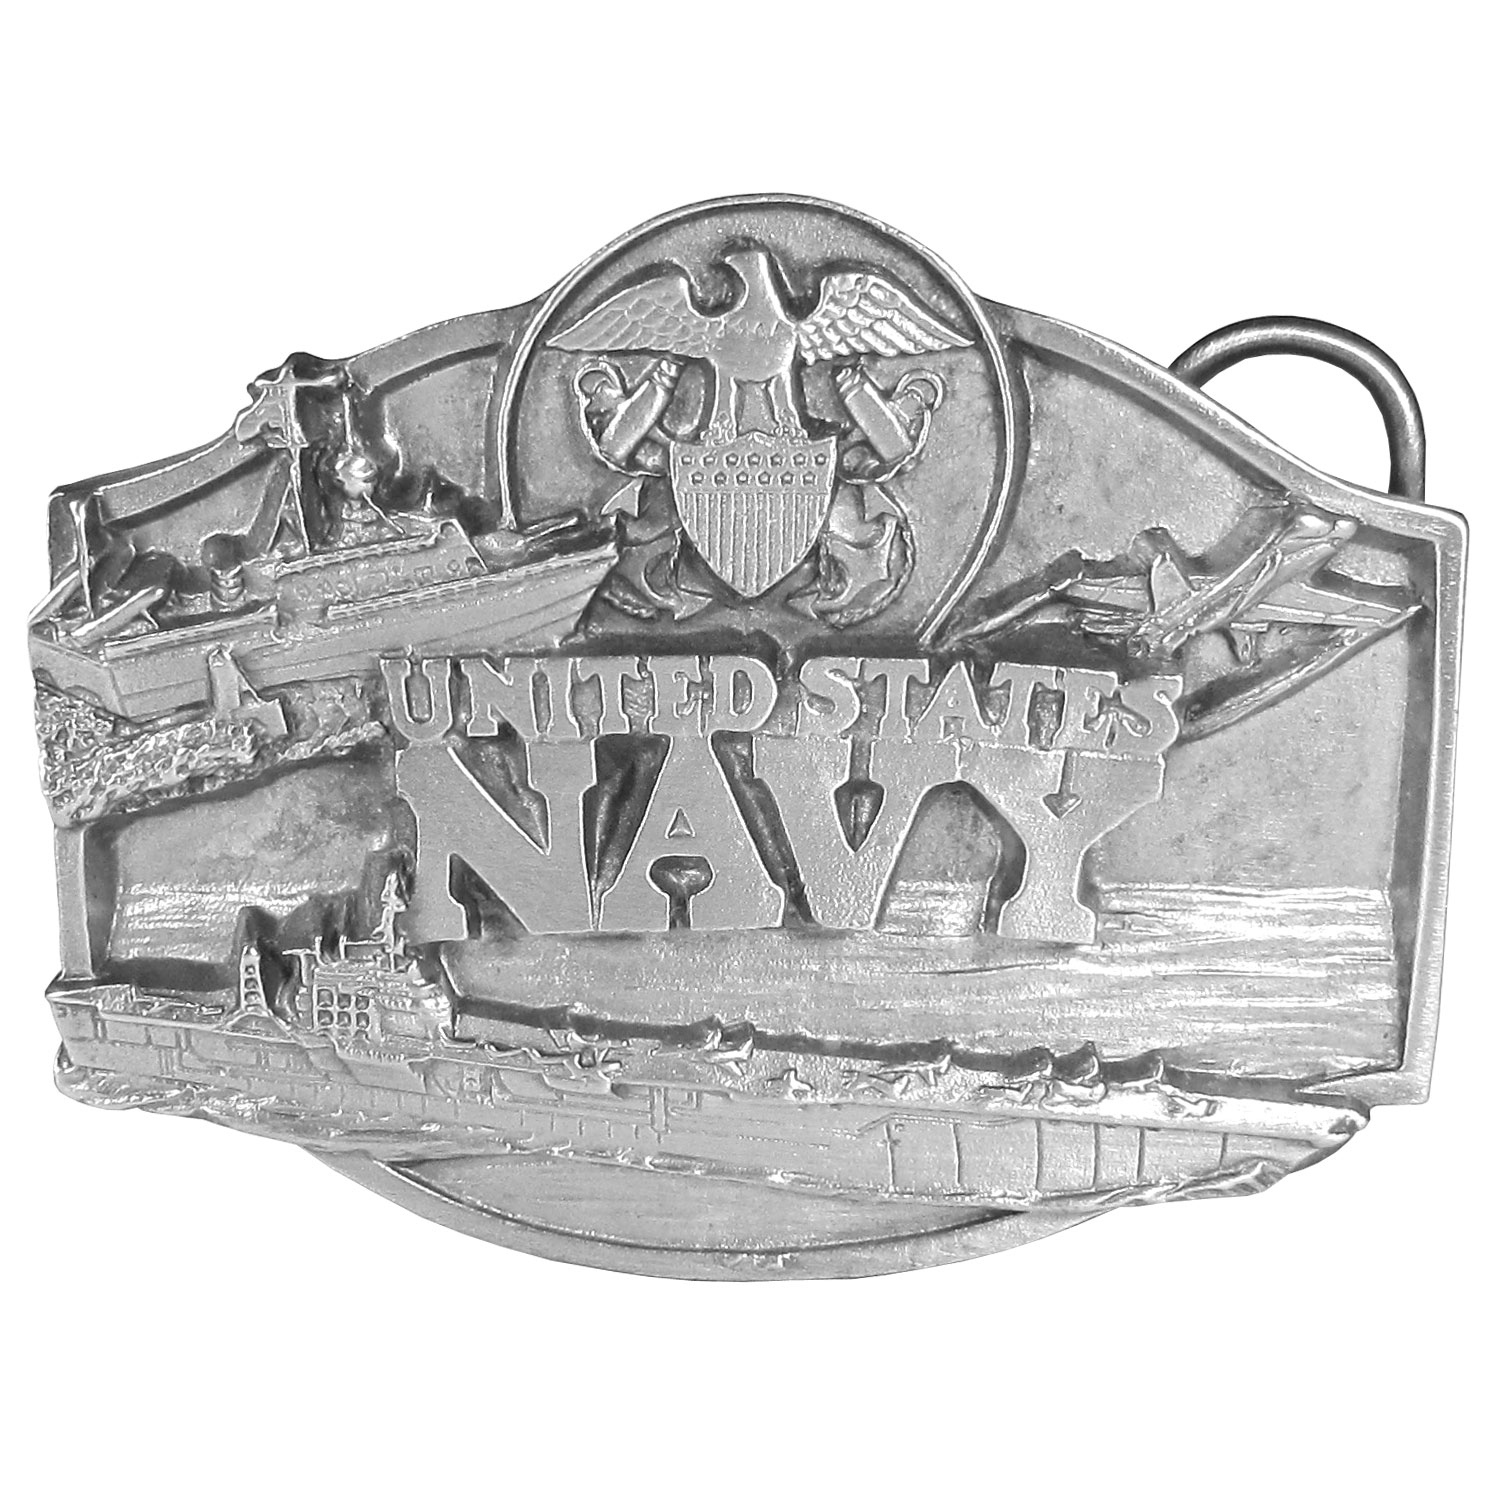 "Navy Antiqued Belt Buckle - This belt buckle celebrates the Navy with the words ""United States Navy"" written in bold across the center with the Navy seal and Navy ships. On the back are the words, The Navy was established by the Continental Congress in 1728. Today the U.S. Navy is second to none as the largest, most modern and the most powerful navy in the world. This exquisitely carved buckle is made of fully cast metal with a standard bale that fits up to 2"" belts."